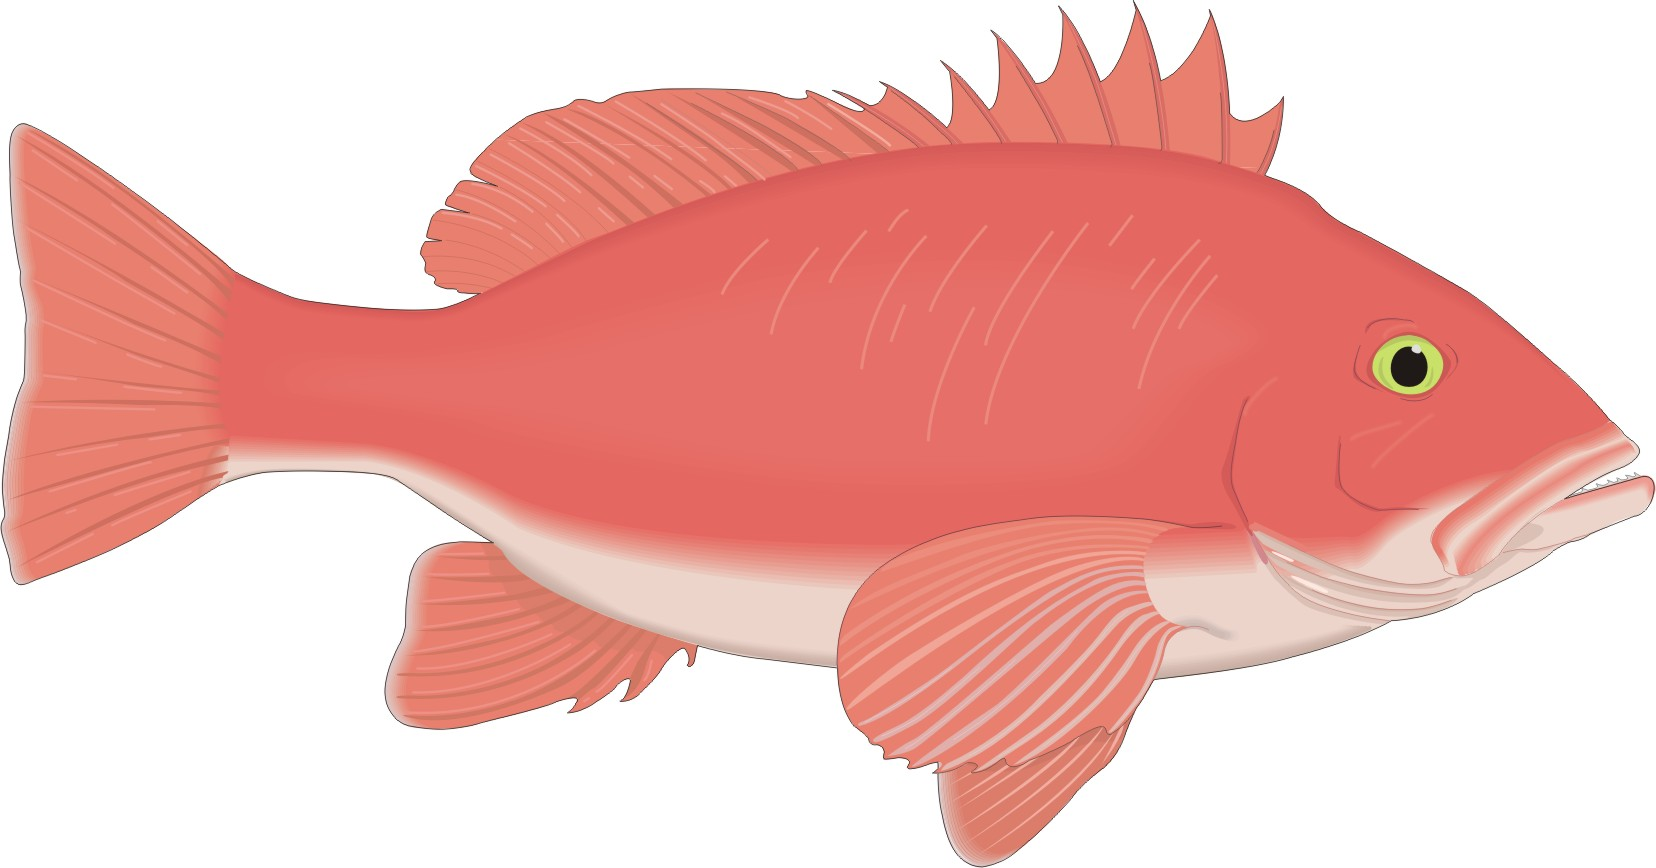 cartoon fish red snapper picture, cartoon fish red snapper.